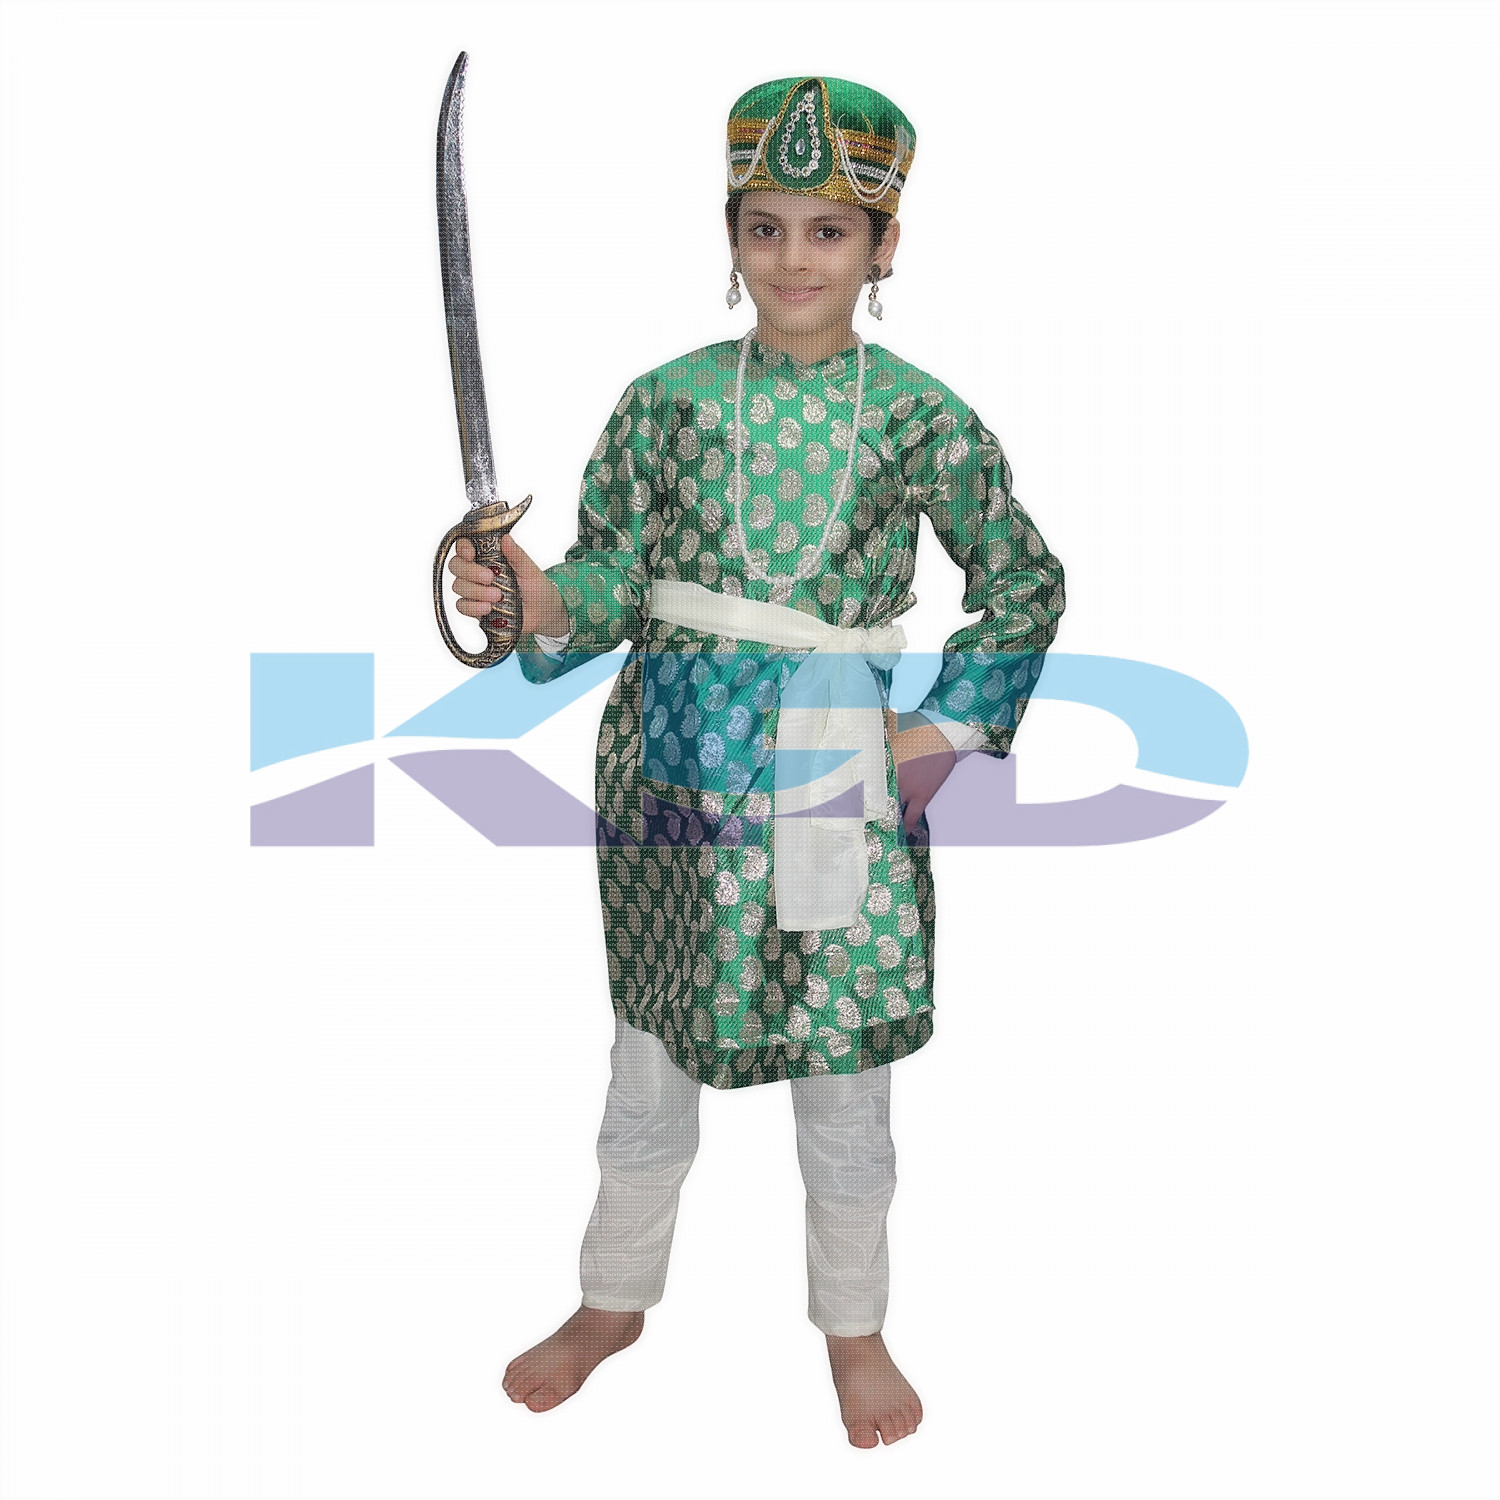 Akbar Green The Great Mughal King Costume For Kids,Costume of Indian Historical Character For School Annual function/Theme Party/Stage Shows/Competition/Birthday Party Dress